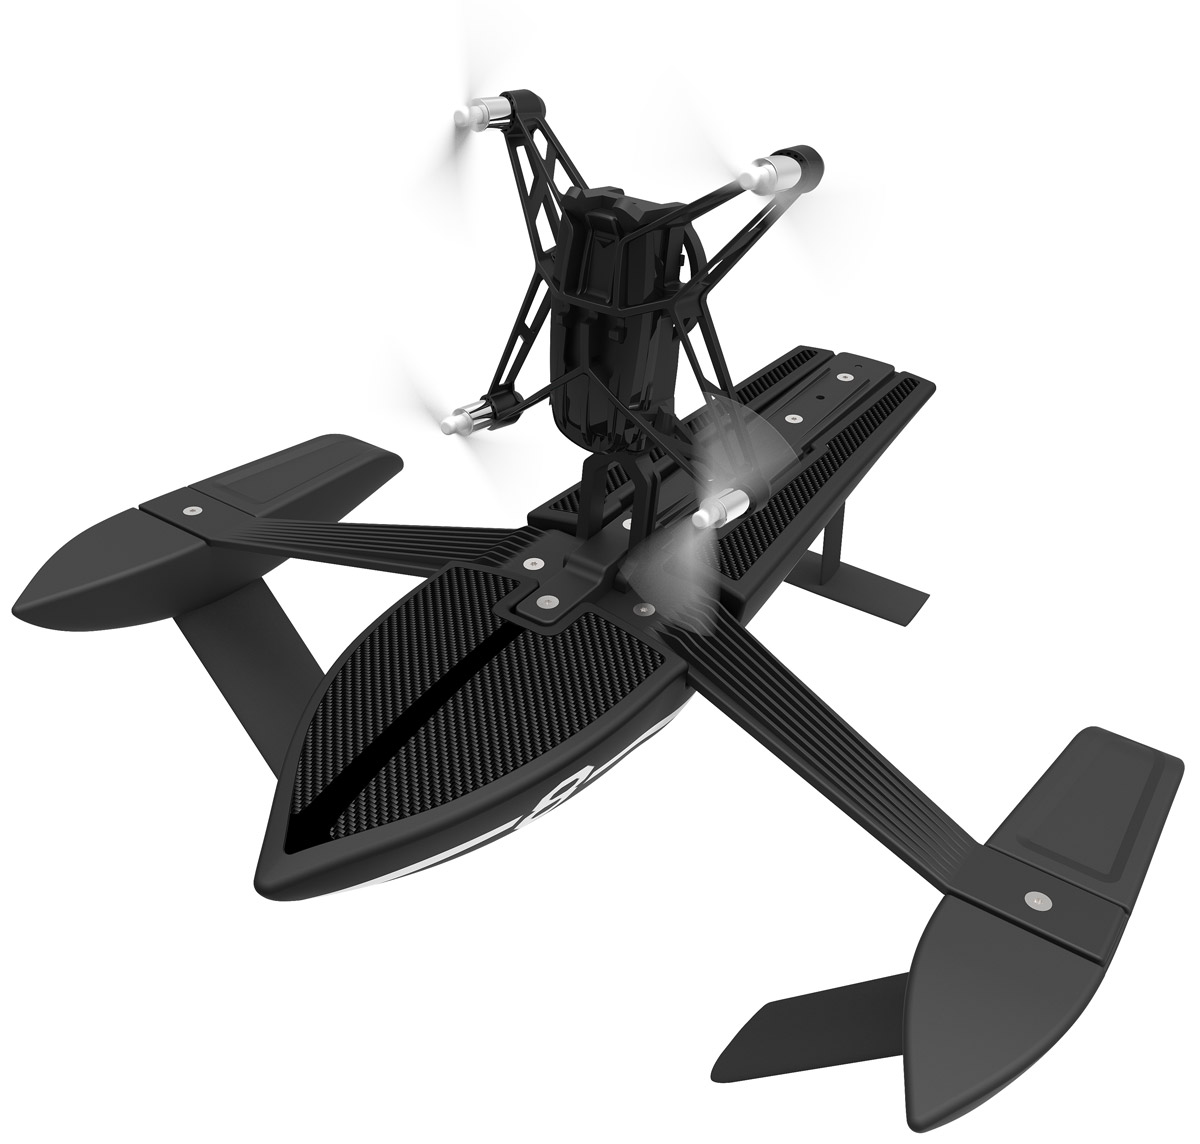 Parrot Квадрокоптер на радиоуправлении Minidrone Hydrofoil Orak и корабль Hydrofoil android smart tv box mini pc quad core intel atom z3735f 2 32gb iptv android 4 4 windows10 hdmi set top box stick bluetooth 4 0